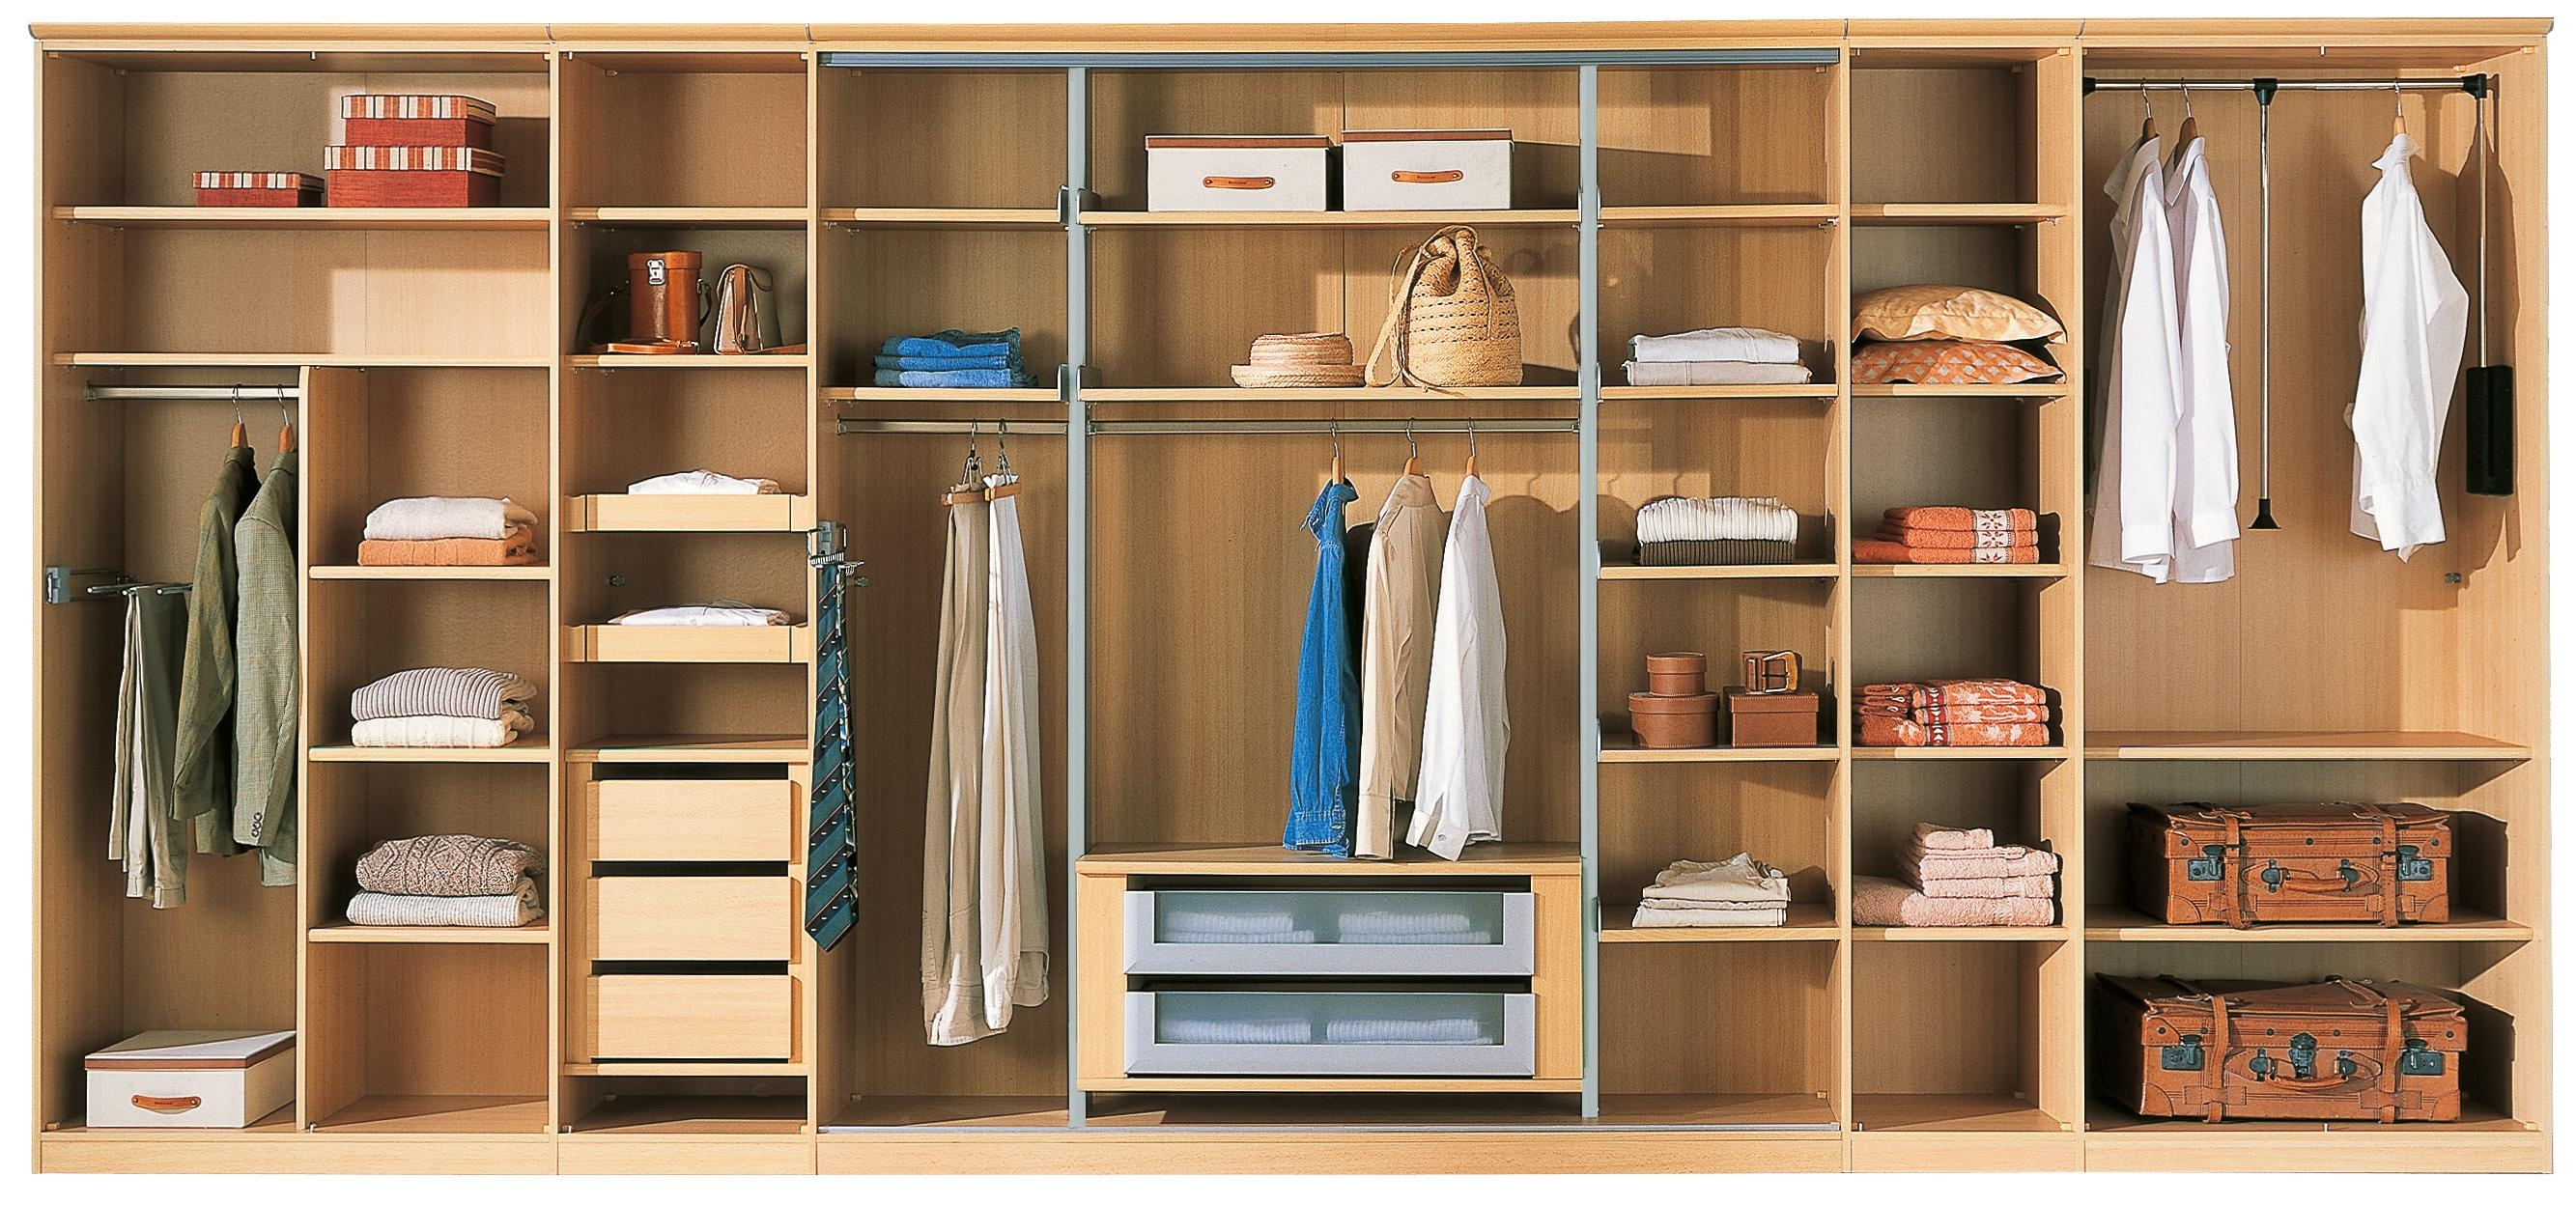 15 Wardrobe With Shelves And Drawers